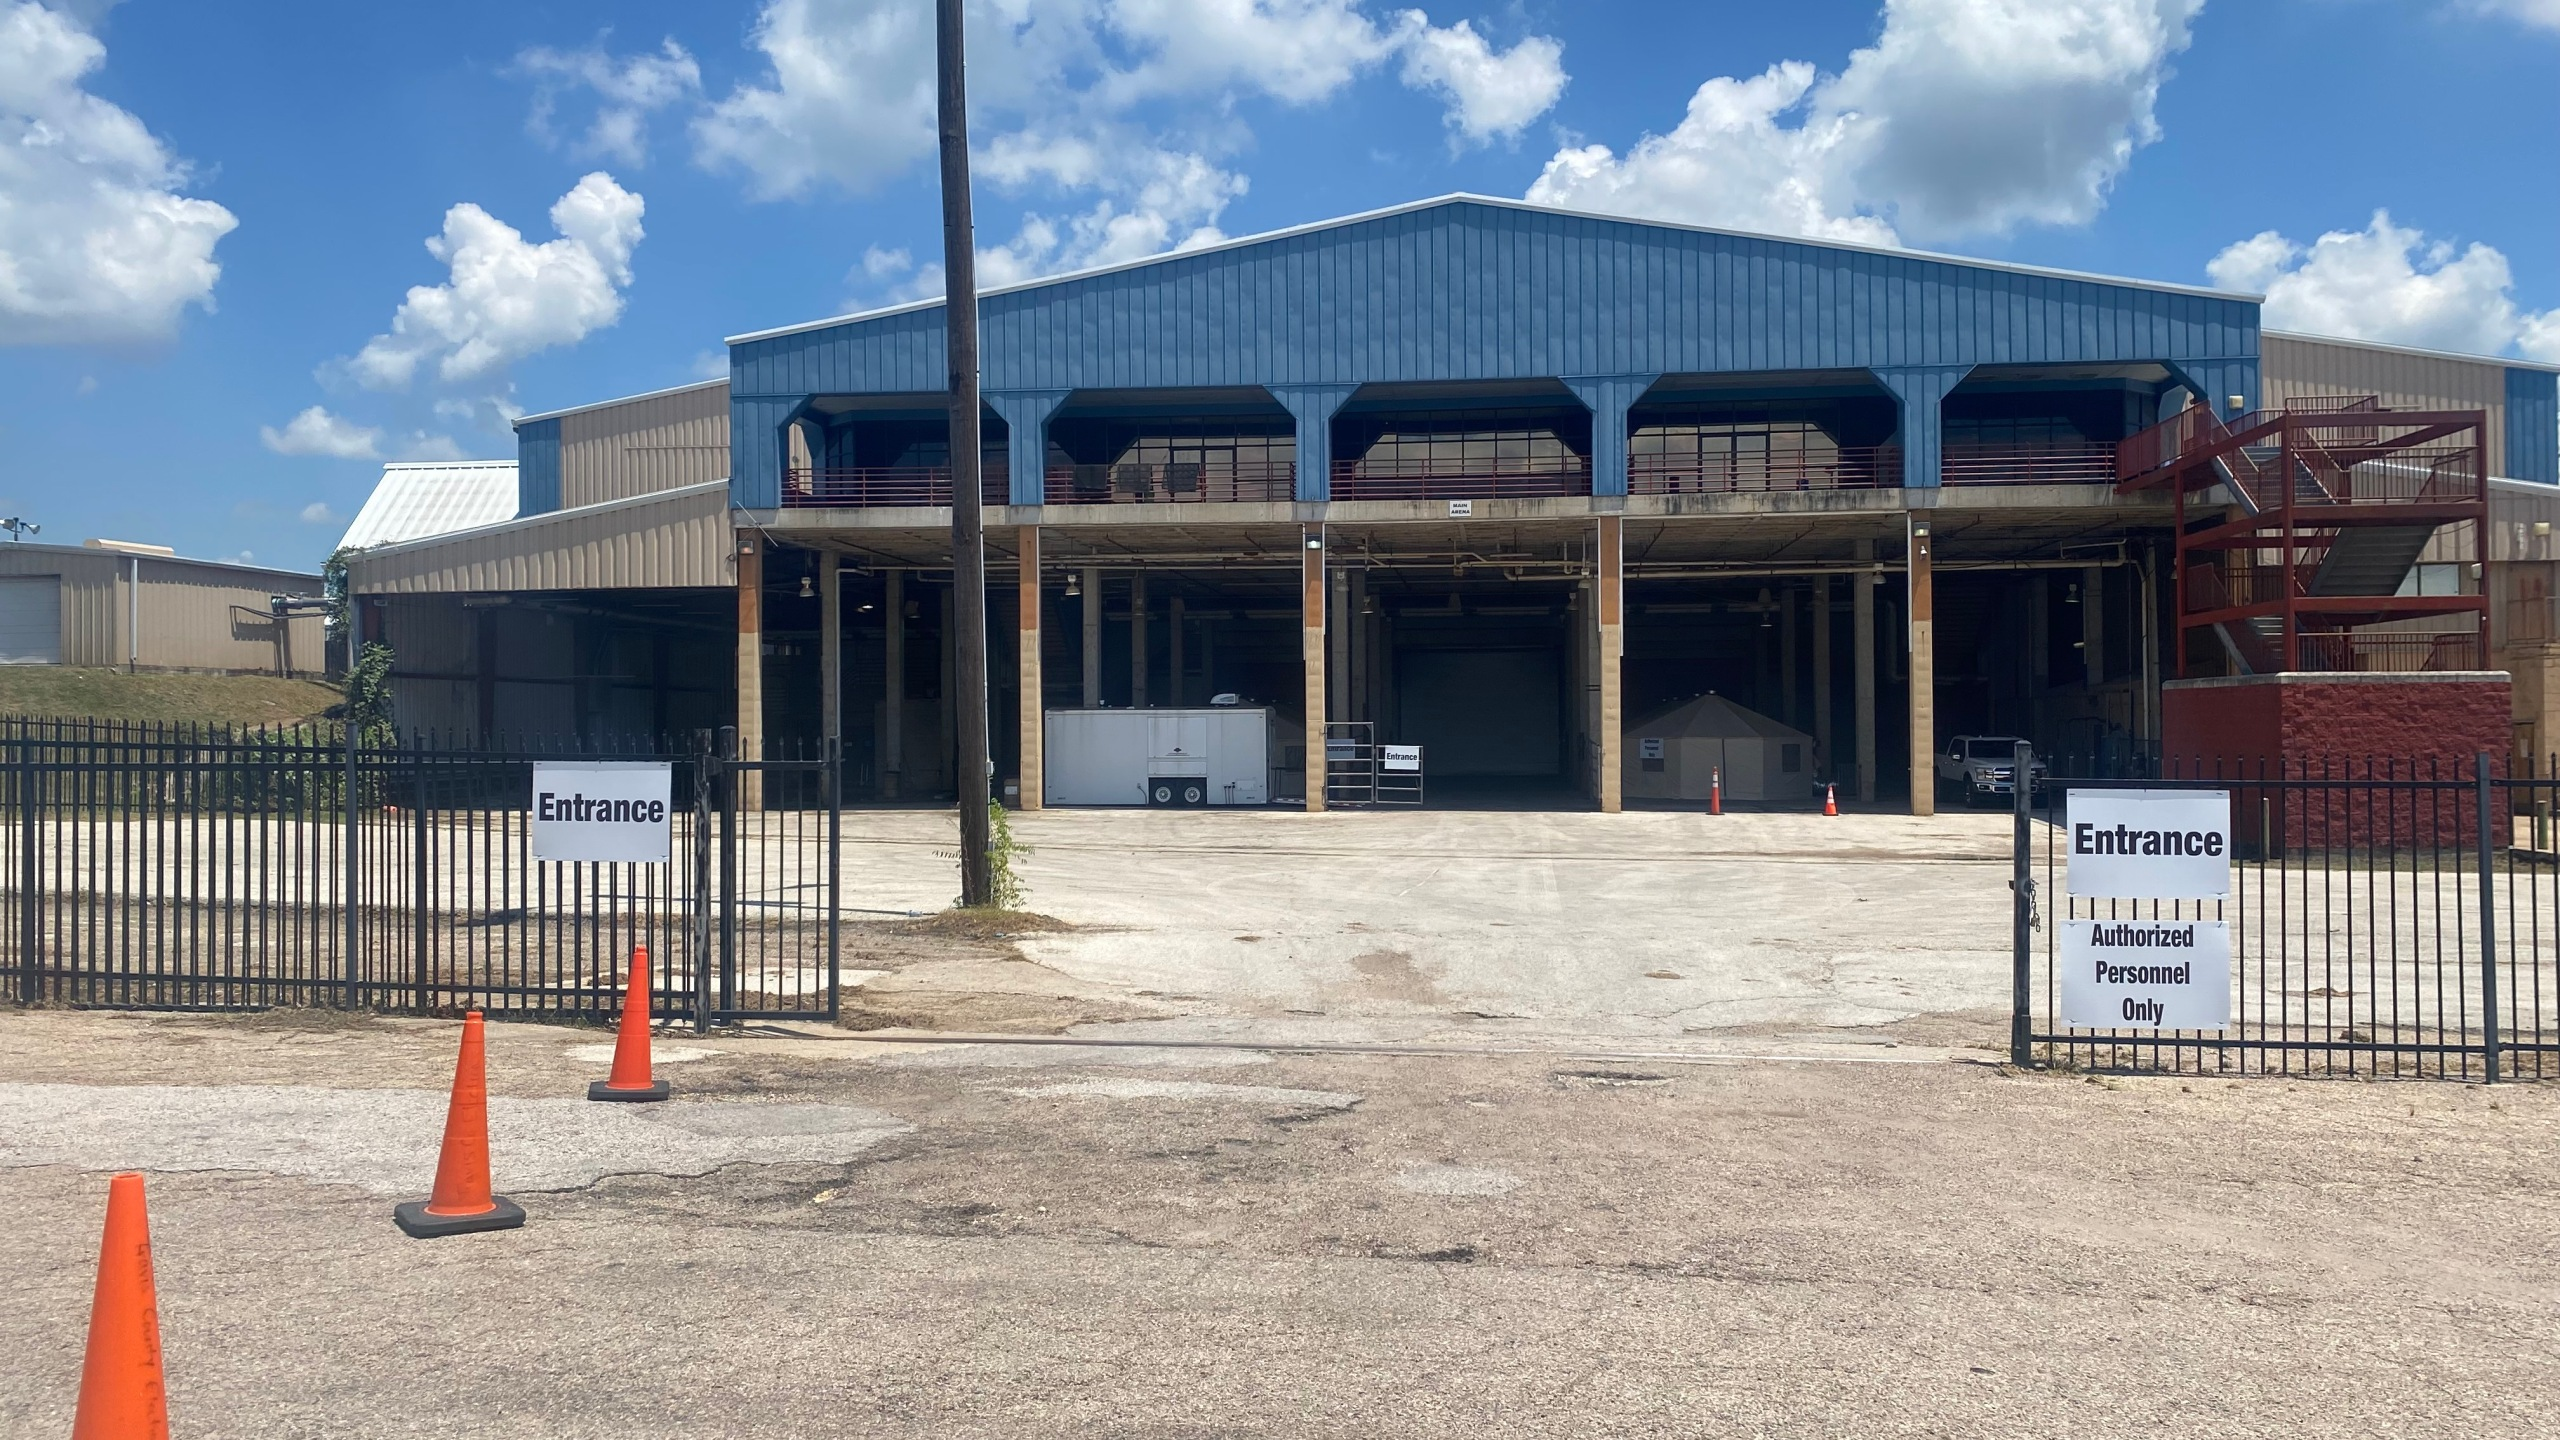 The Travis County Expo Center is now home to an antibody infusion center to help COVID-19 patients stay out o the hospital and avoid serious symptoms. (KXAN photo/Jacqulyn Powell)